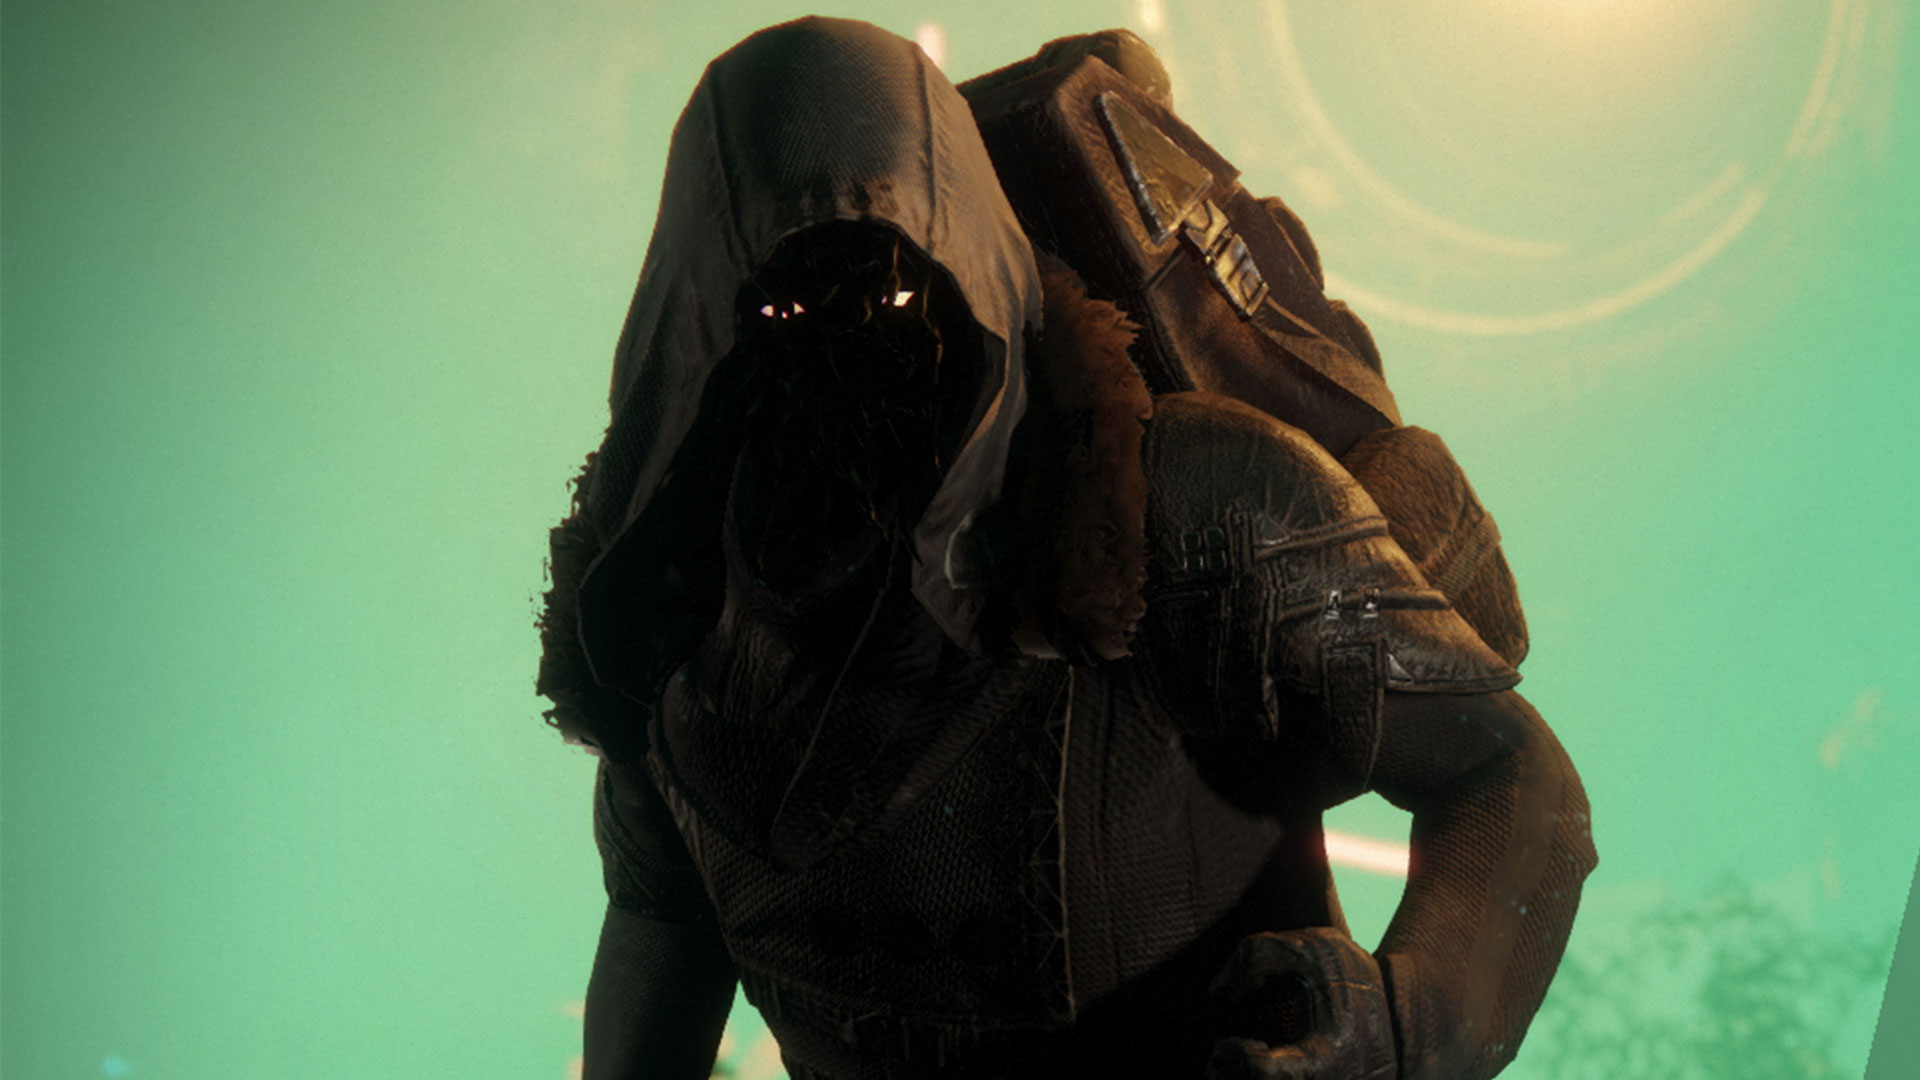 Destiny 2 Xur location and items, May 24-27